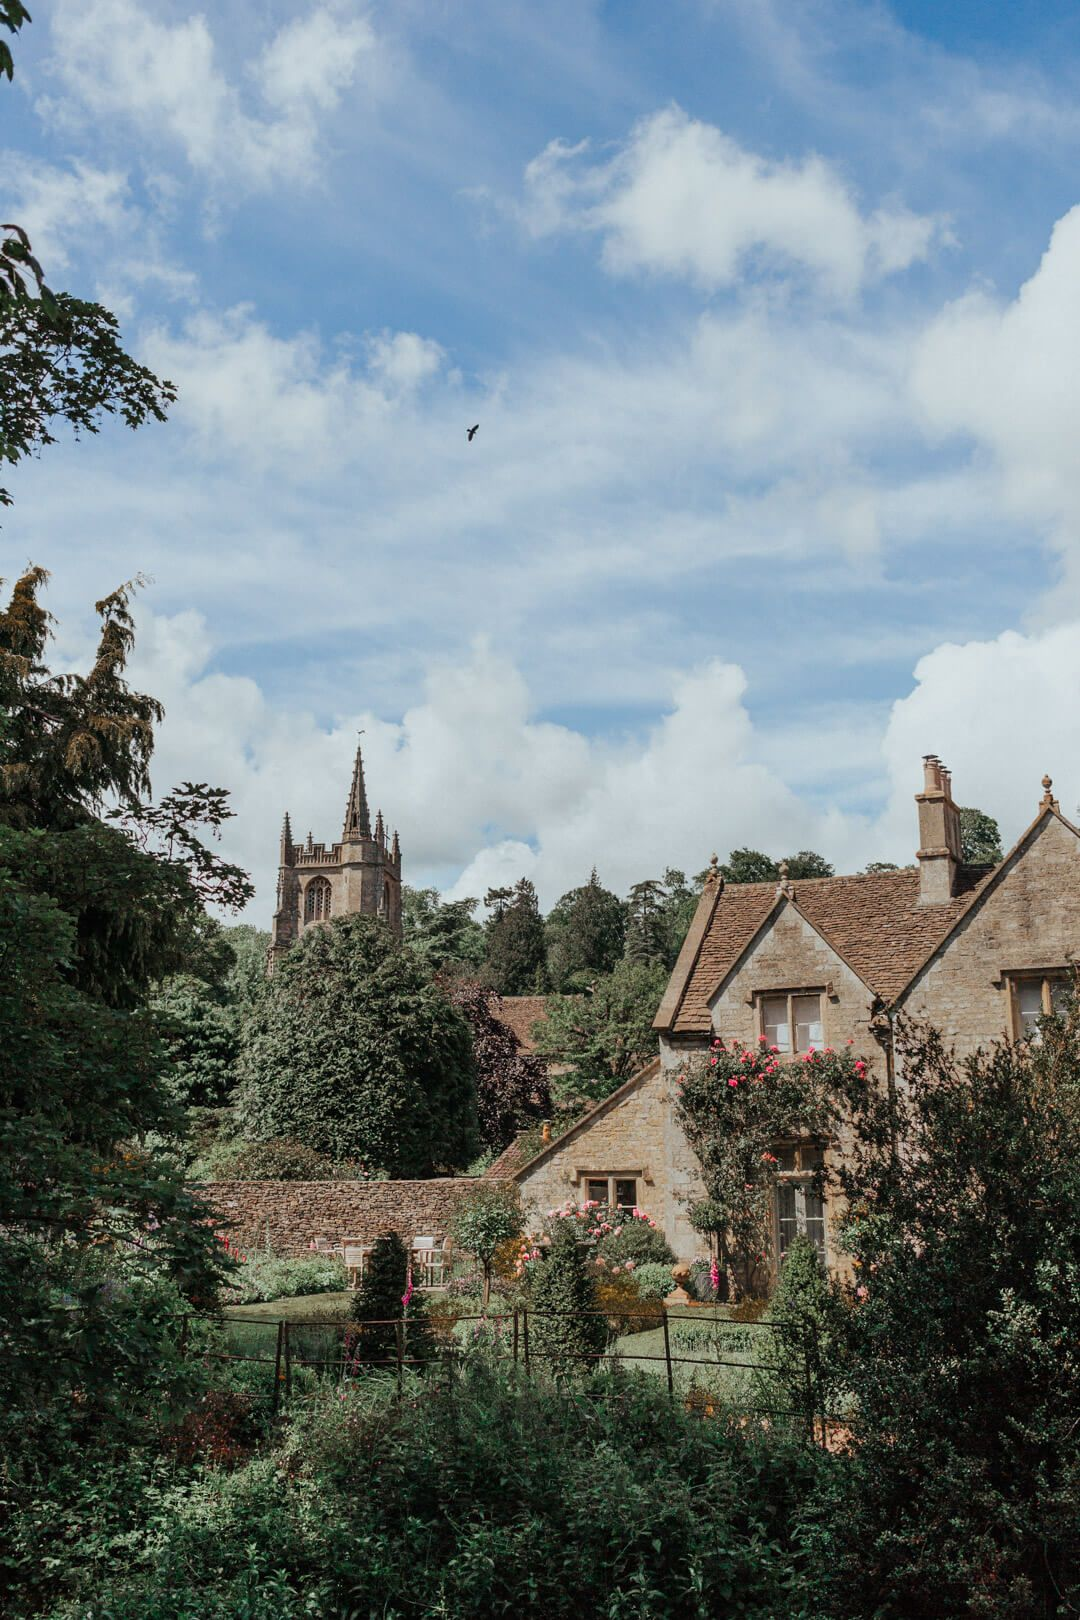 Visiting the Fairytale Cotswold Village of Castle Combe